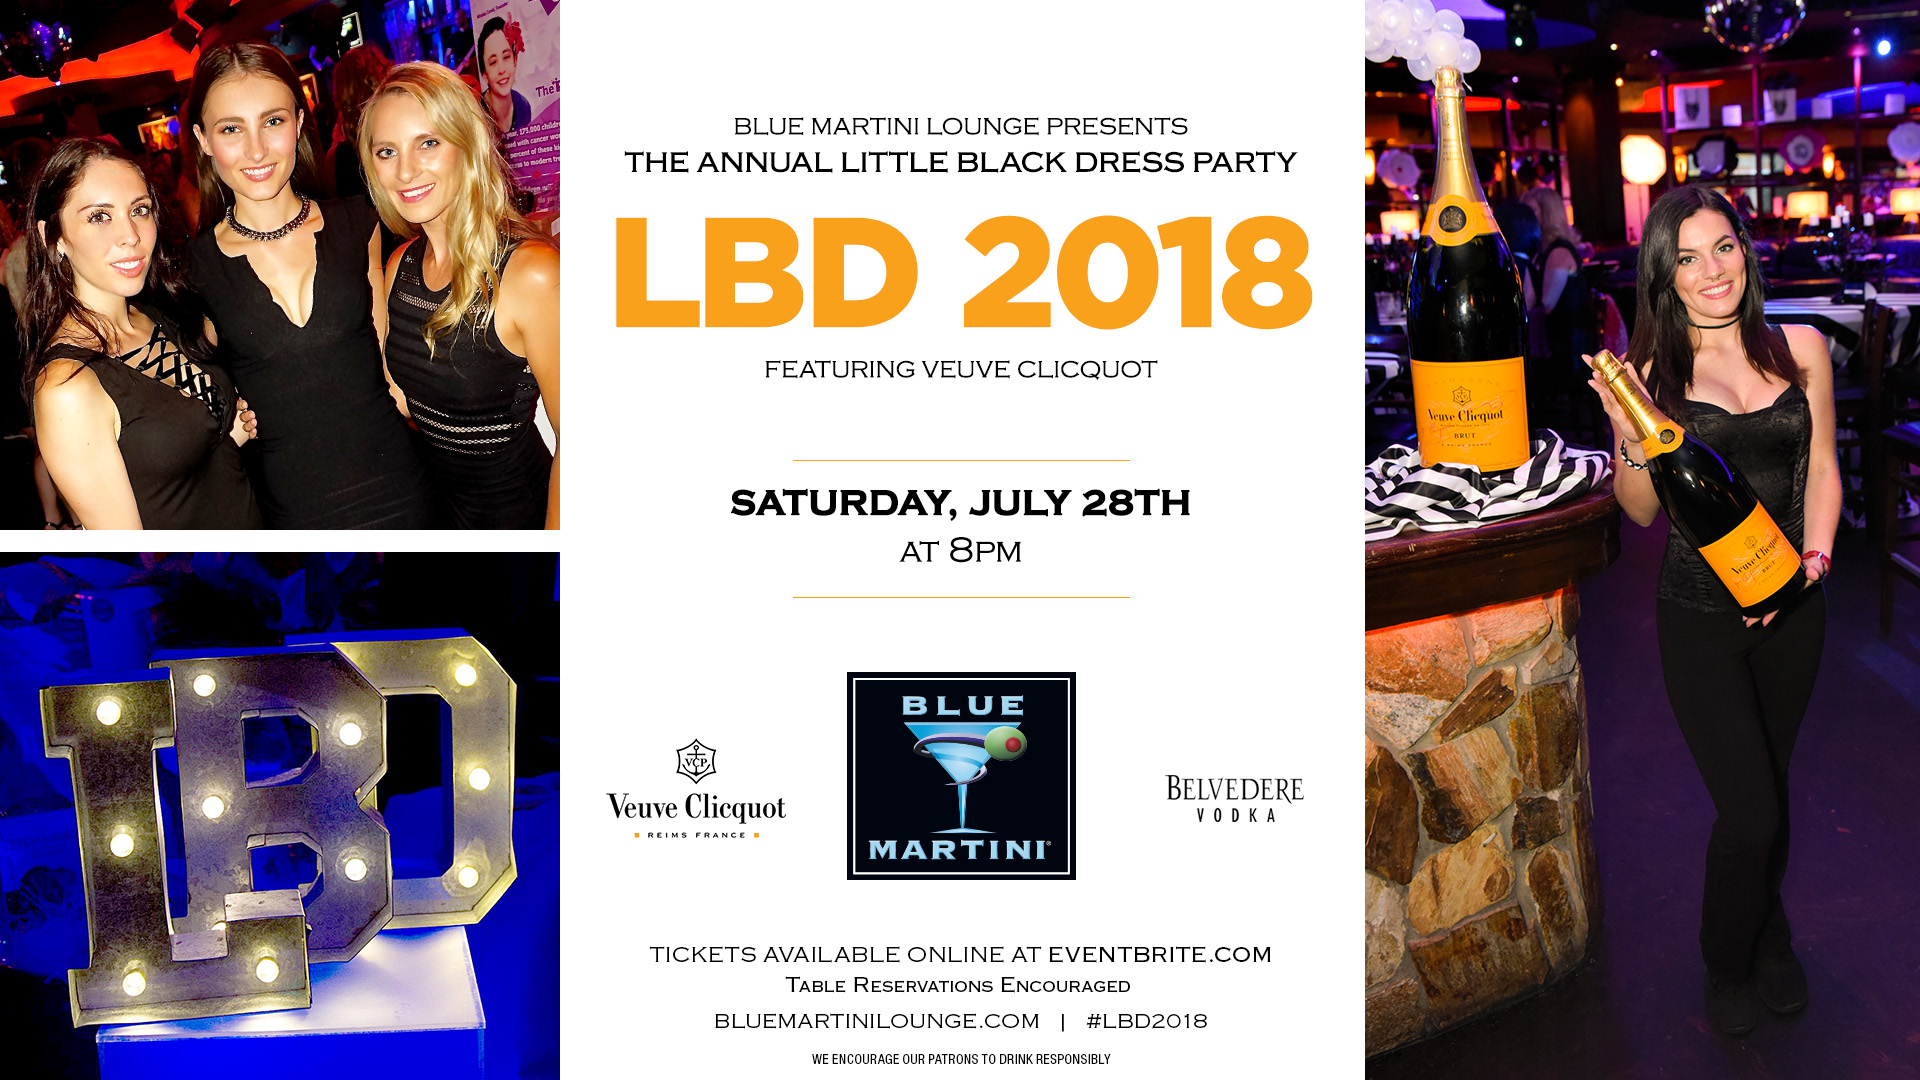 It's Time for the Best Party of the Summer – Little Black Dress 2018